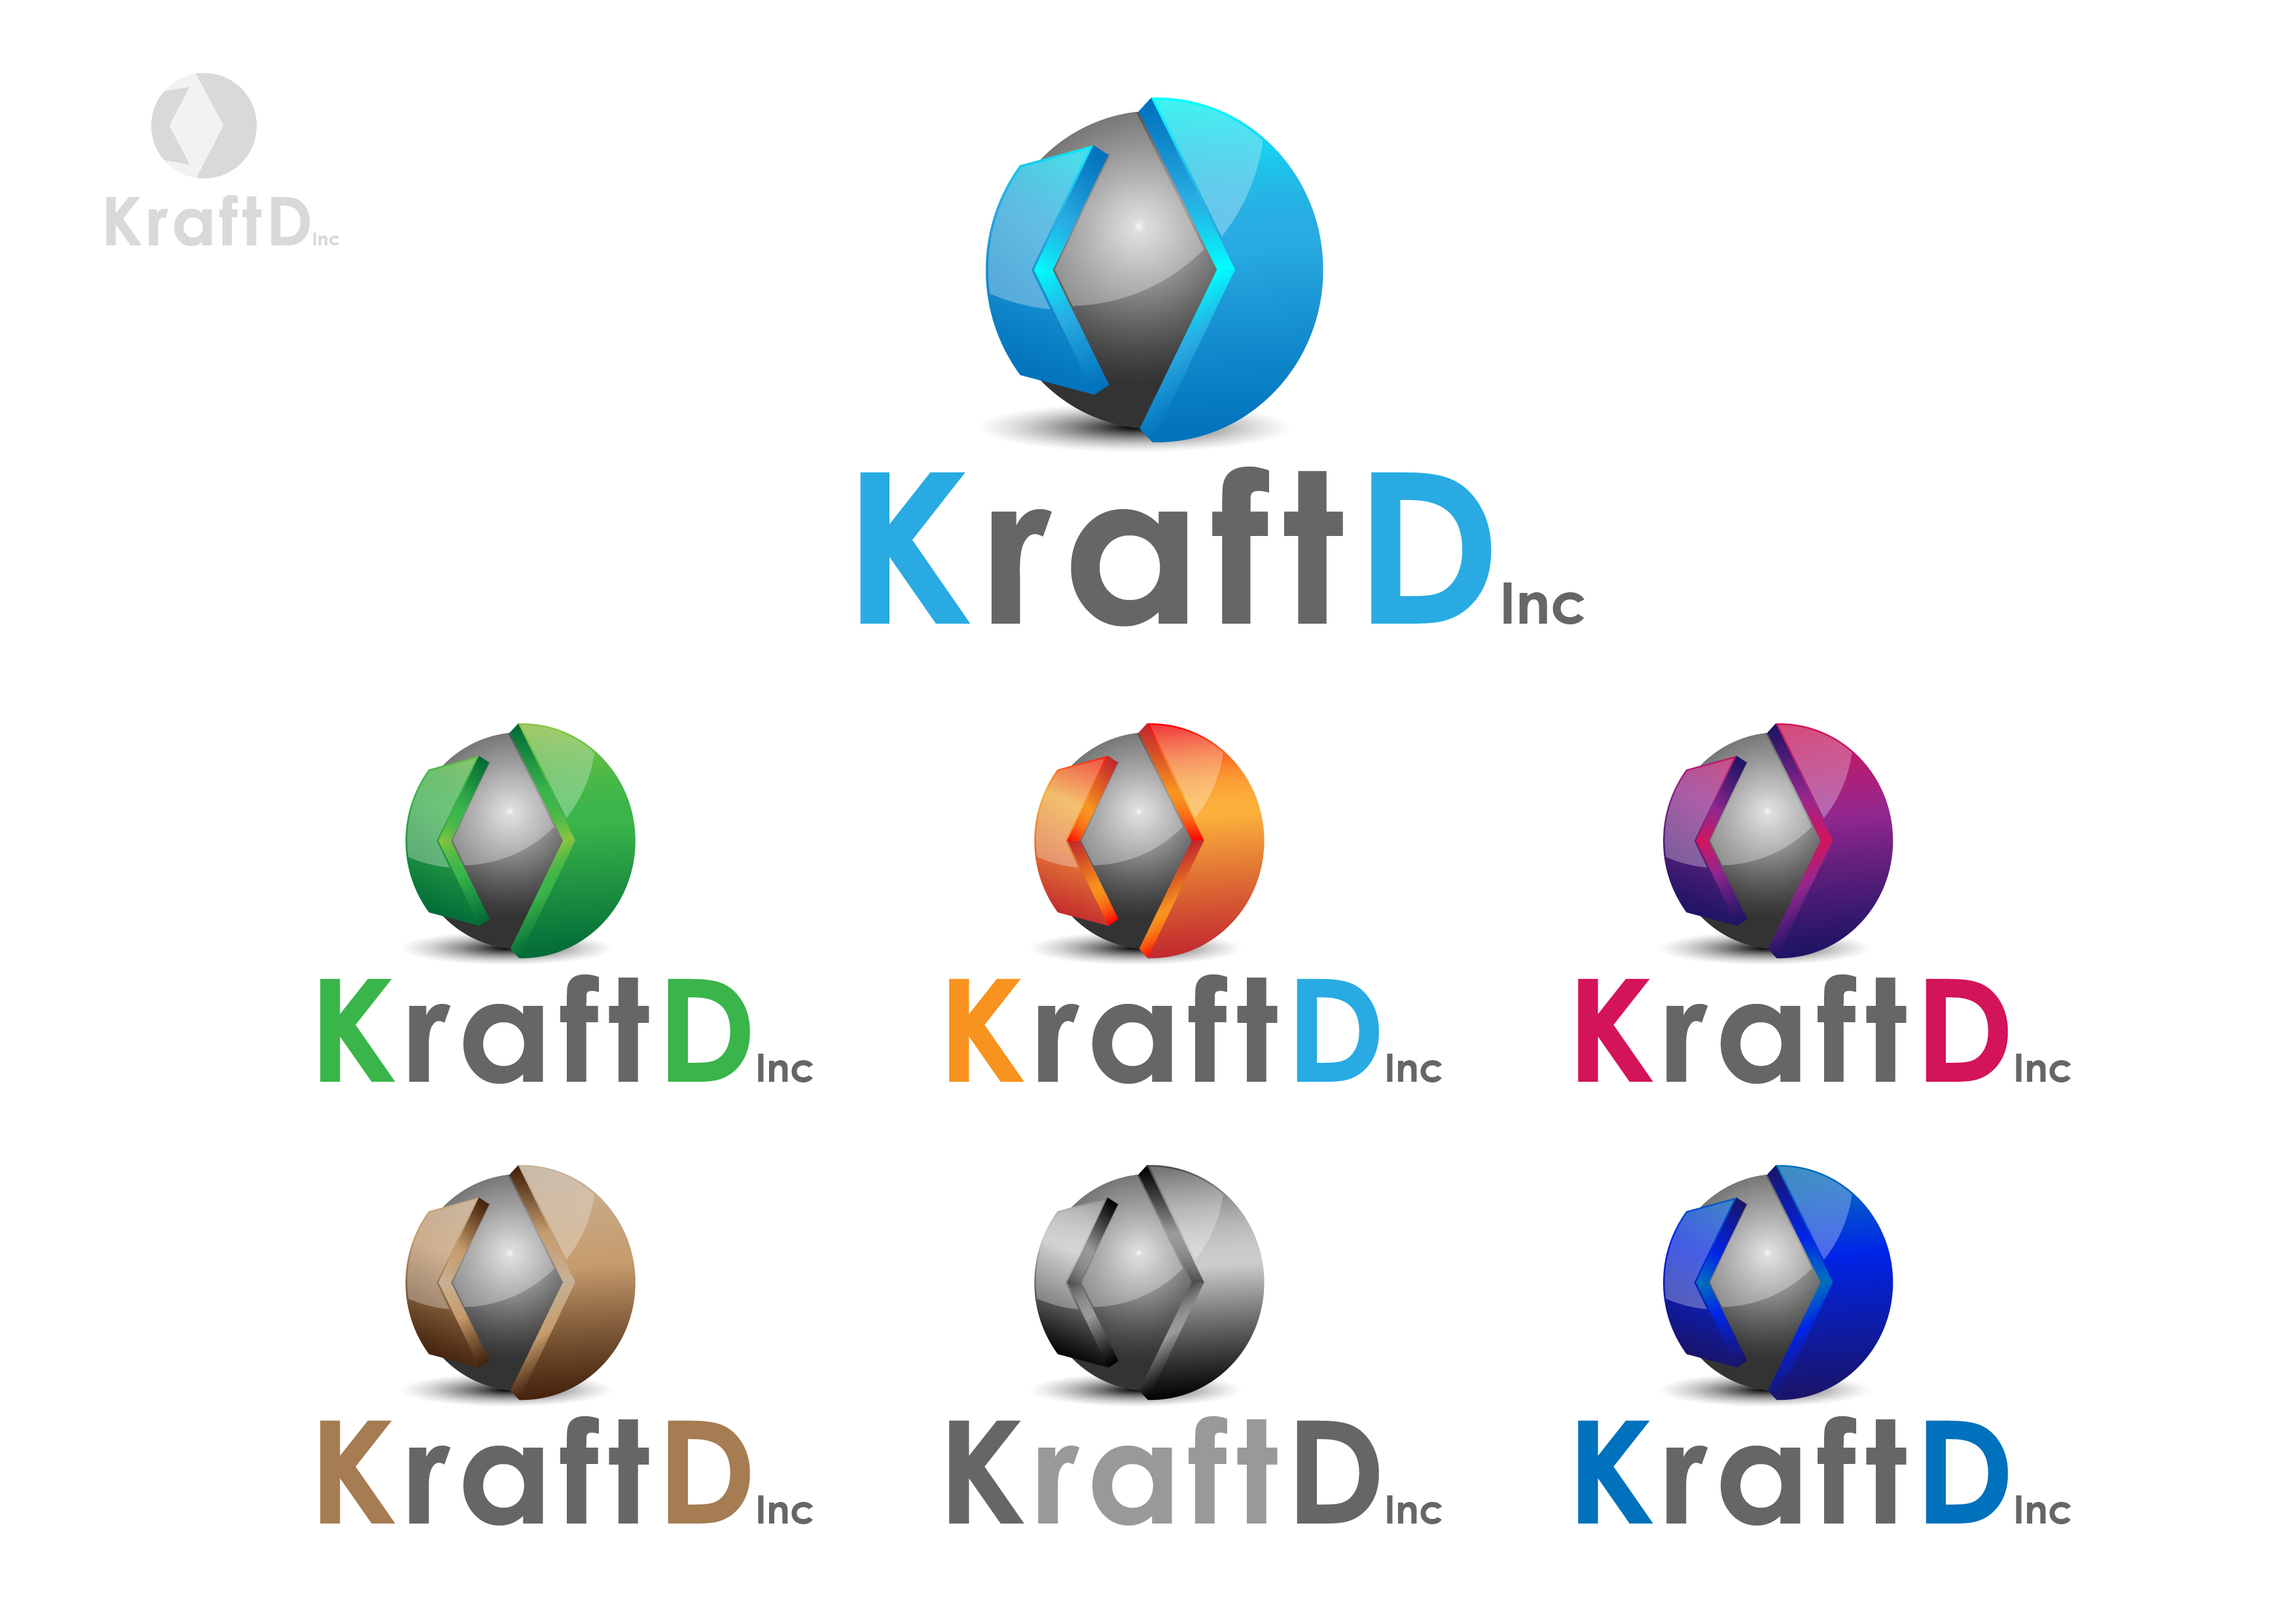 Logo Design by 3draw - Entry No. 410 in the Logo Design Contest Unique Logo Design Wanted for Kraft D Inc.